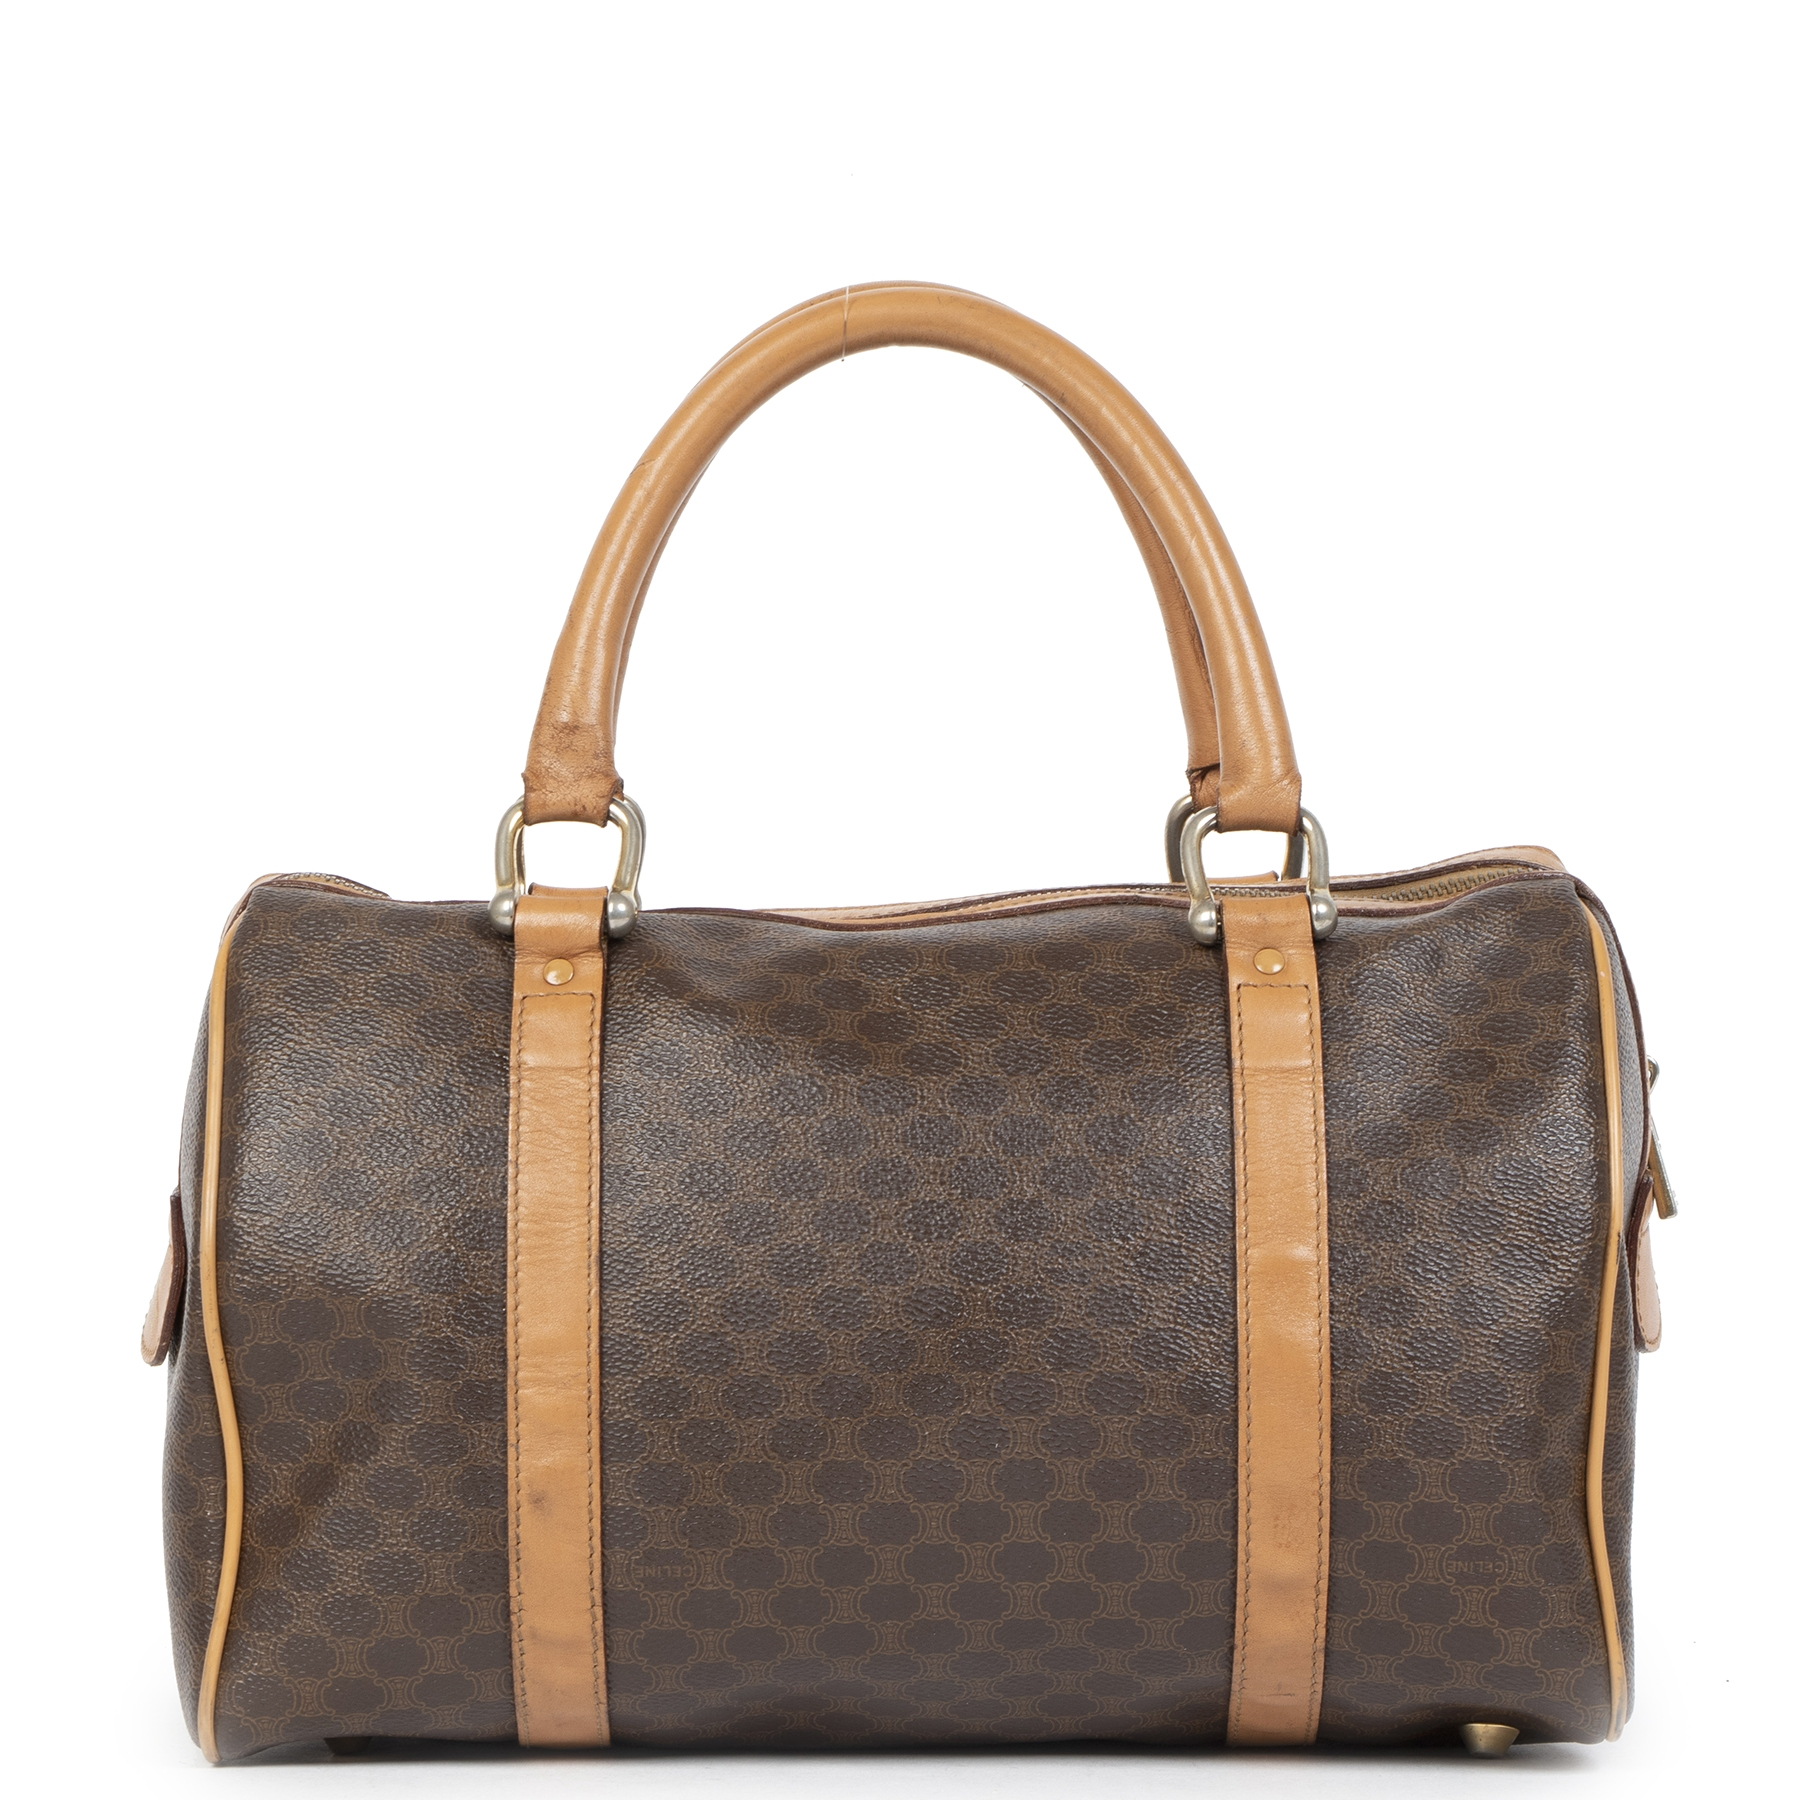 Authentic secondhand Celine Monogram Boston Bag at the right price safe and secure online webshop LabelLOV luxury brand Antwerp